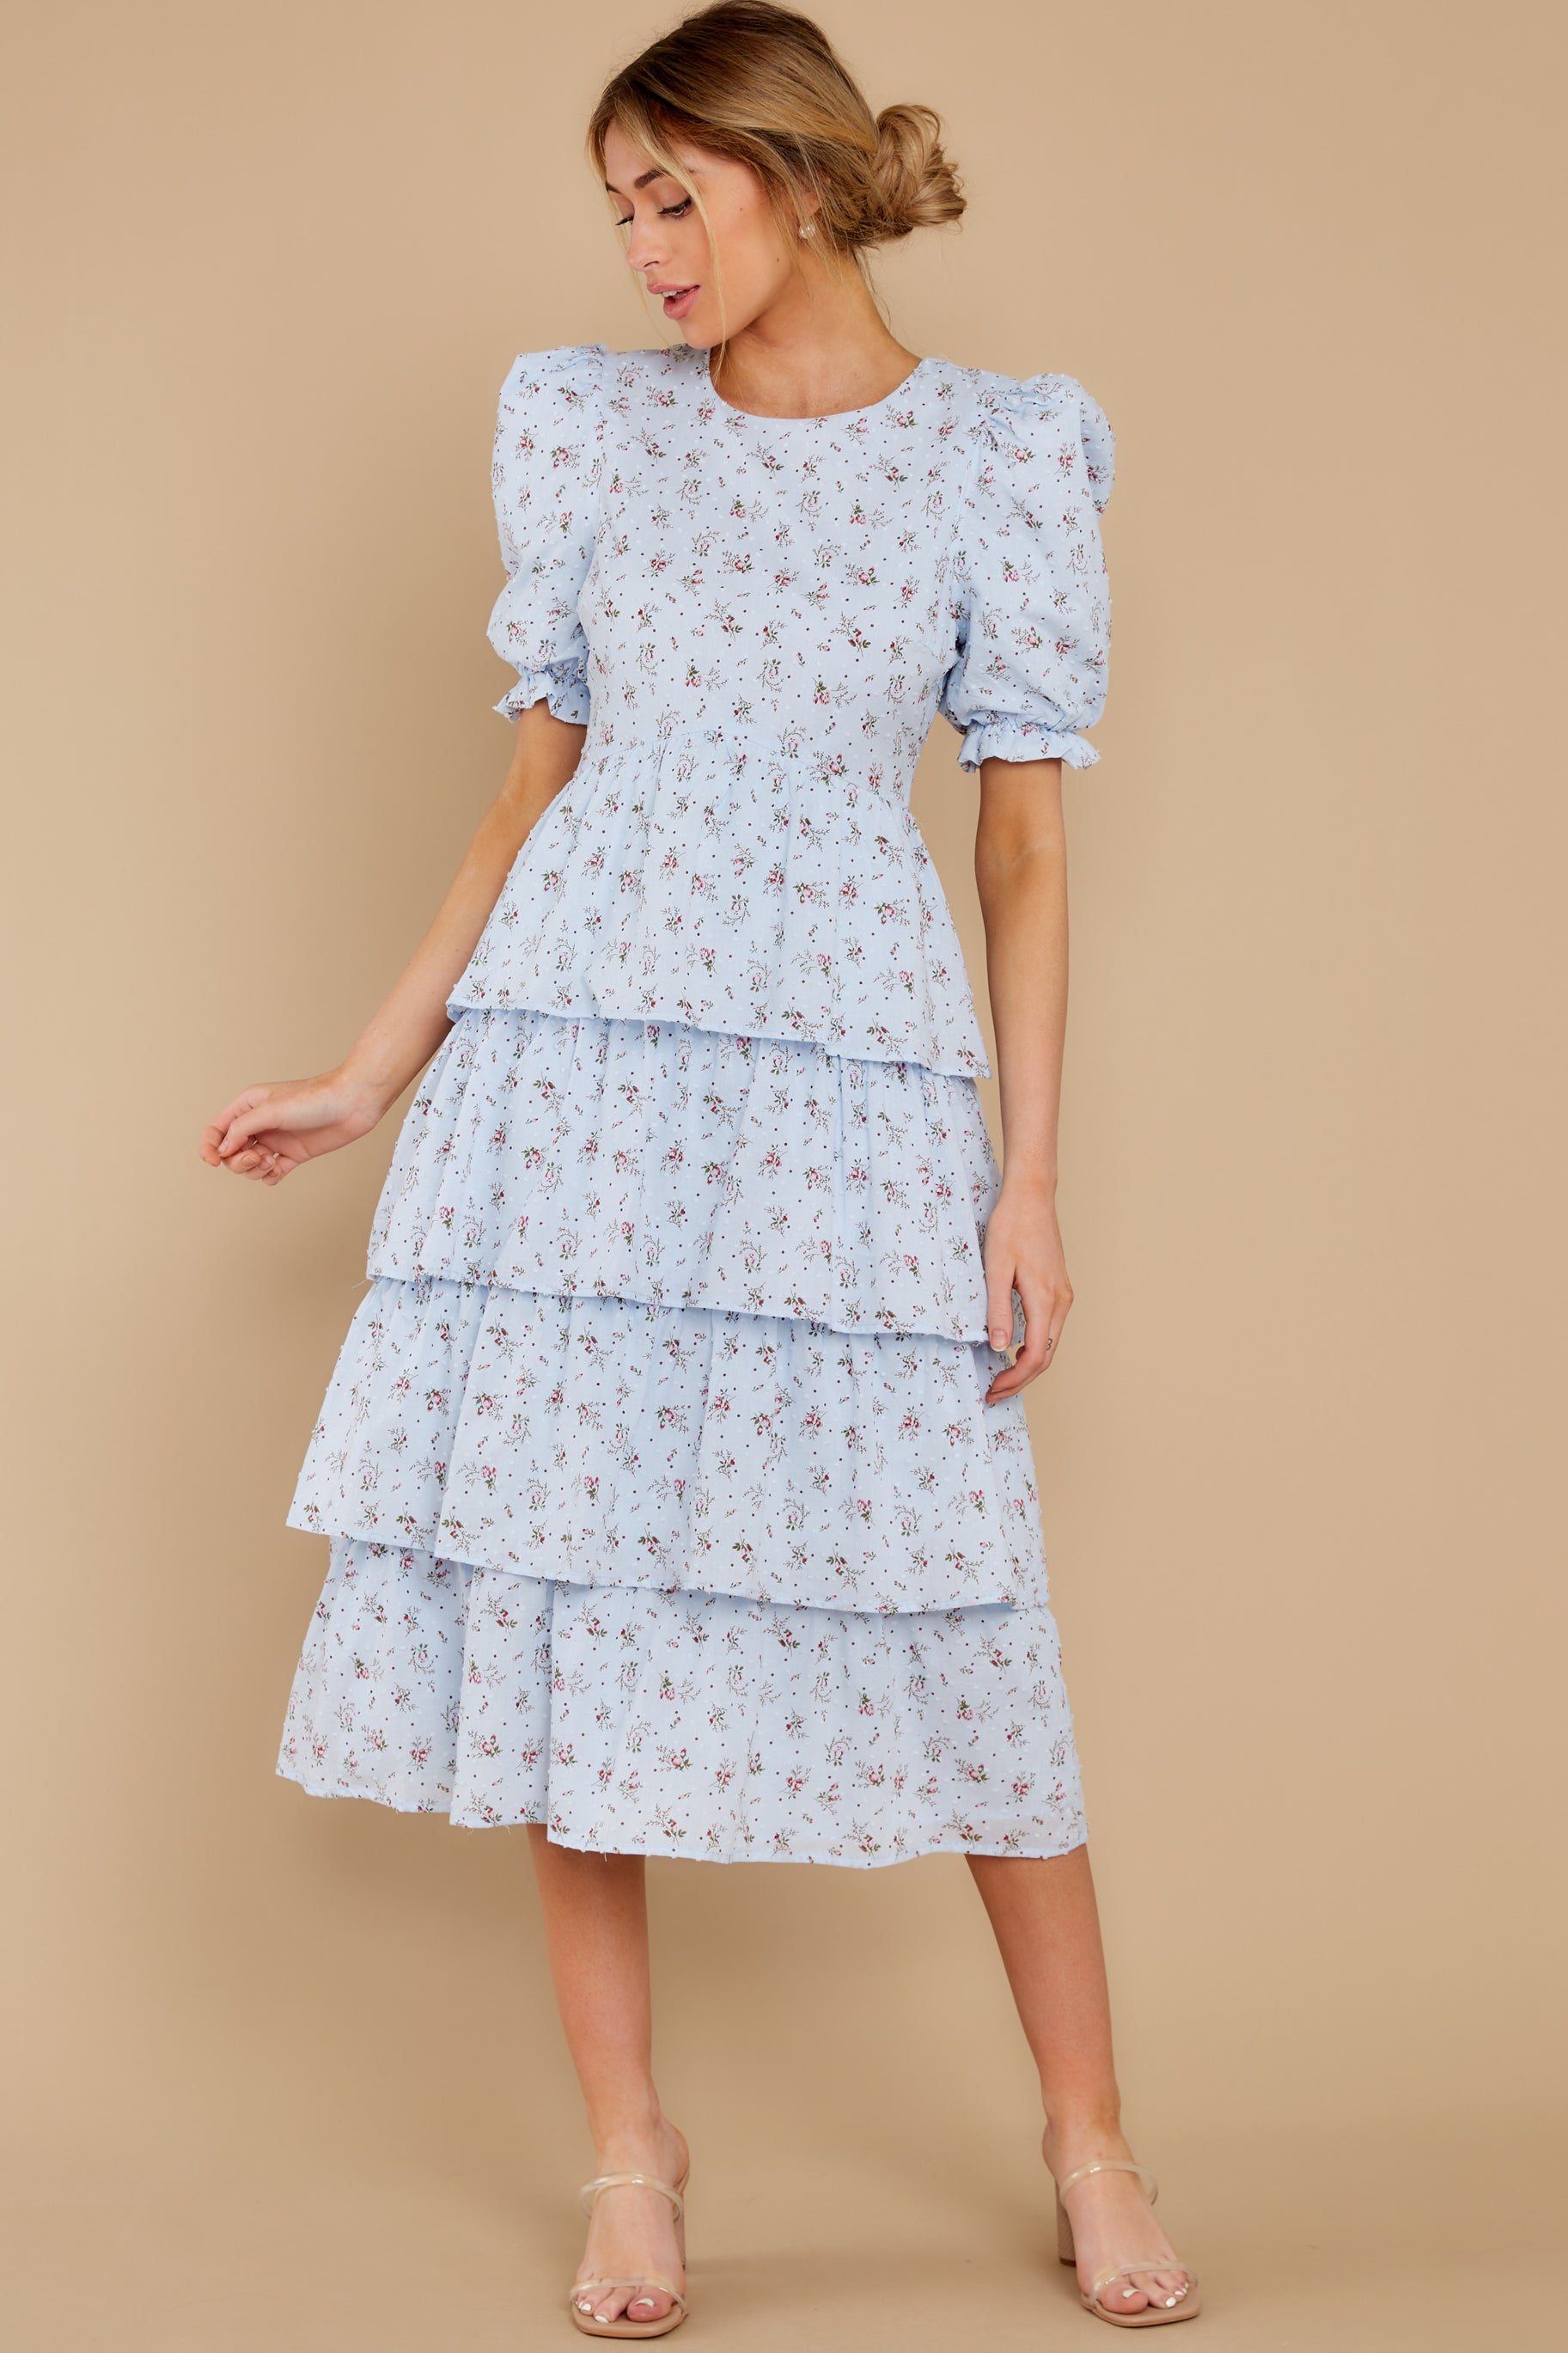 1930s Day Dresses, Afternoon Dresses History Good Girl Light Blue Floral Print Midi Dress $56.00 AT vintagedancer.com